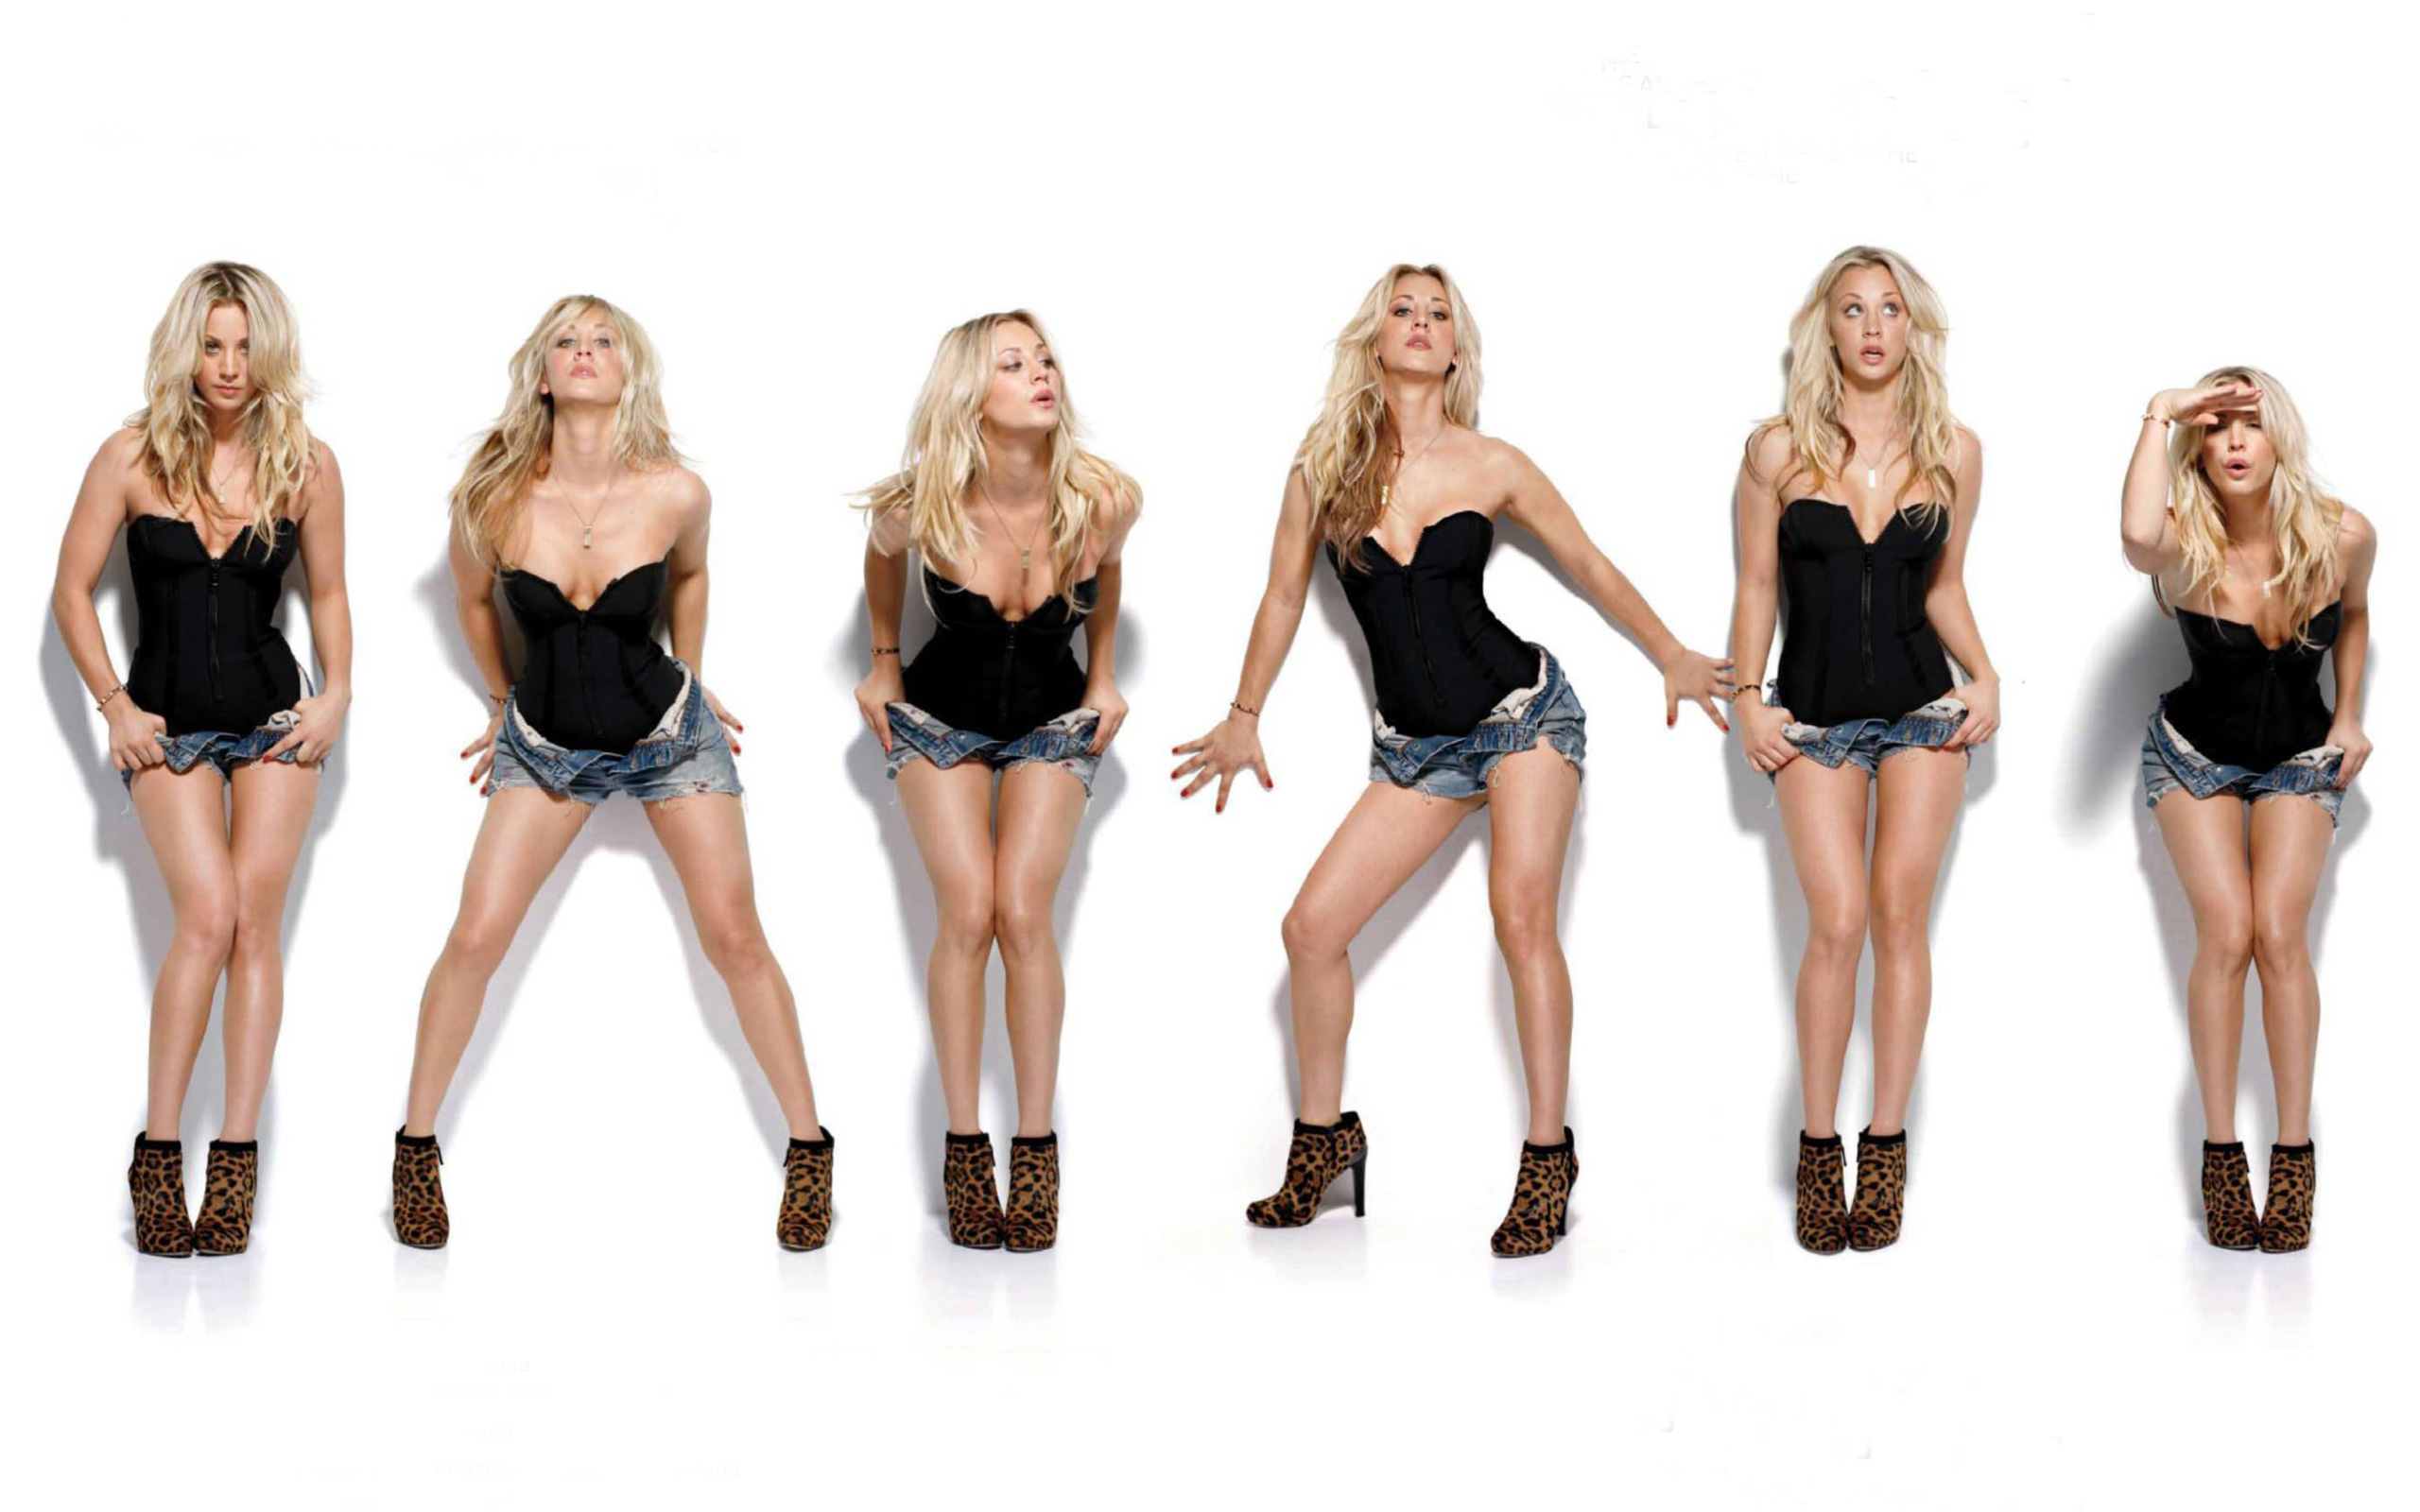 Kaley cuoco maxim shoot wallpaper picture ebaums world kaley cuoco maxim shoot wallpaper voltagebd Images